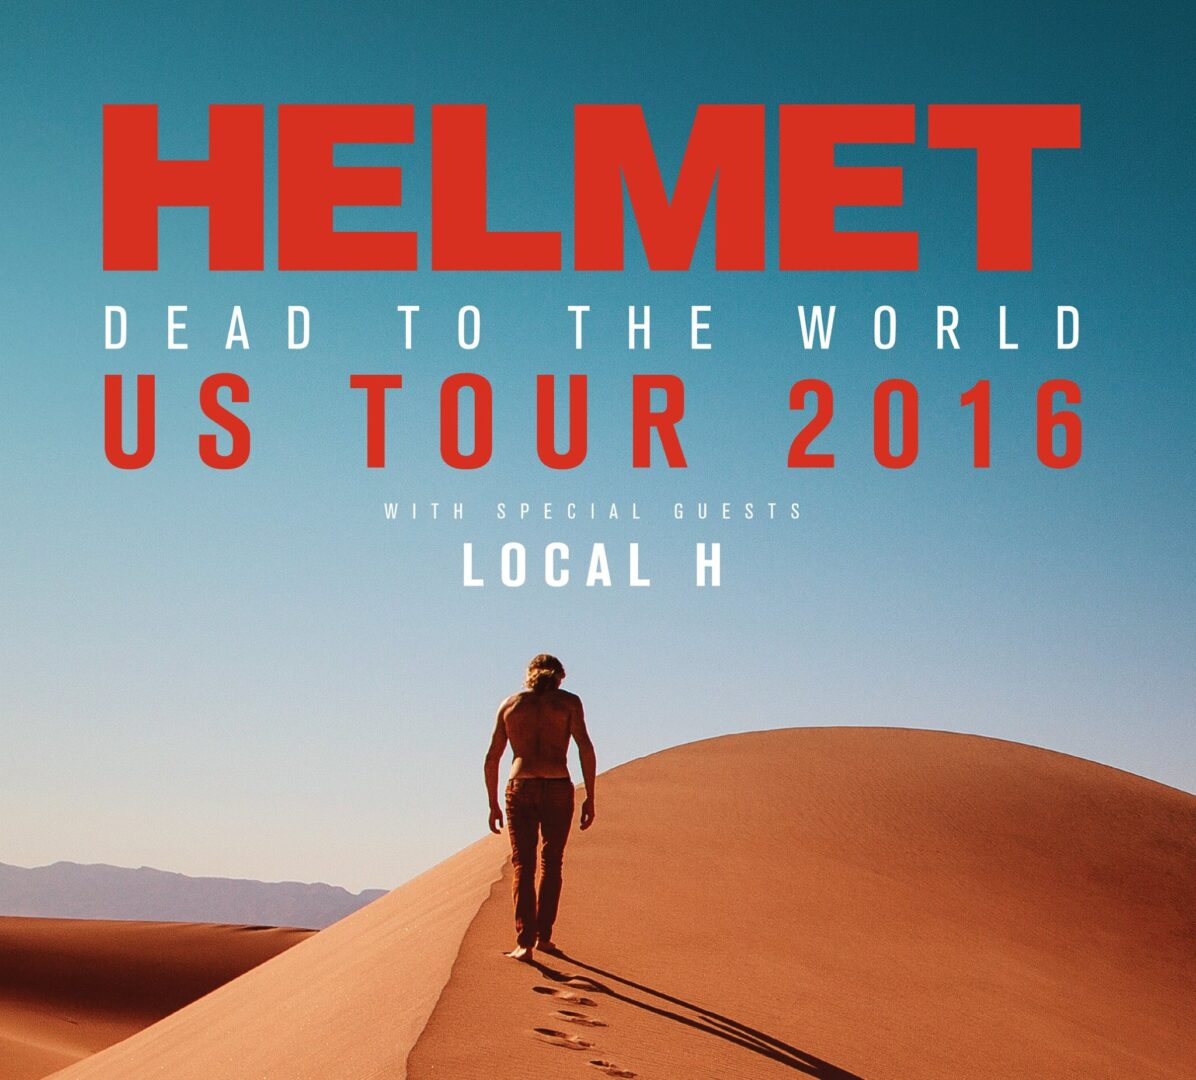 helmet-north-american-dead-to-the-world-tour-2016-tour-poster